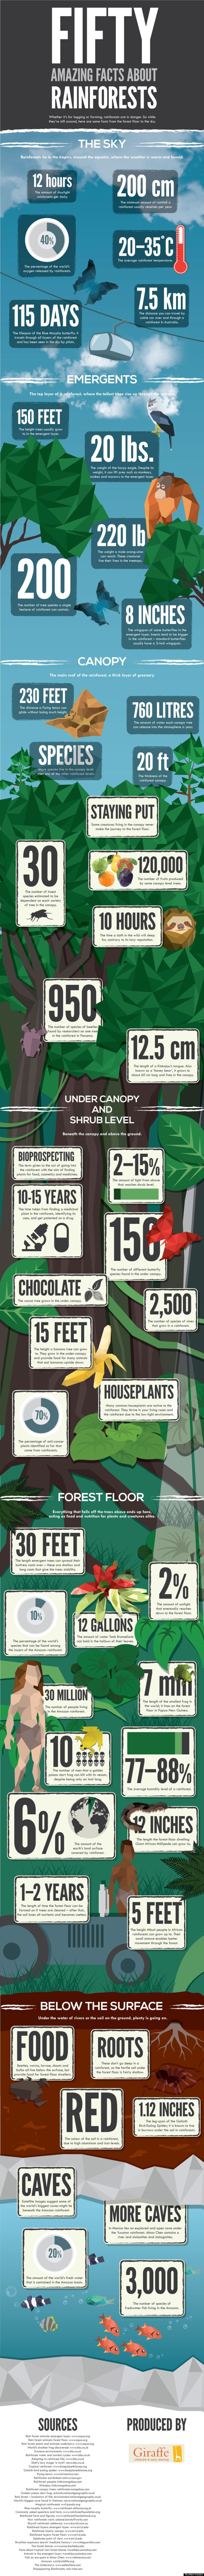 "According to the National Geographic, rainforests could vanish from the planet completely within the next century if current deforestation rates continue.""   Here's a really cool infographic that illustrates the many, many reasons why we can't let that happen:"